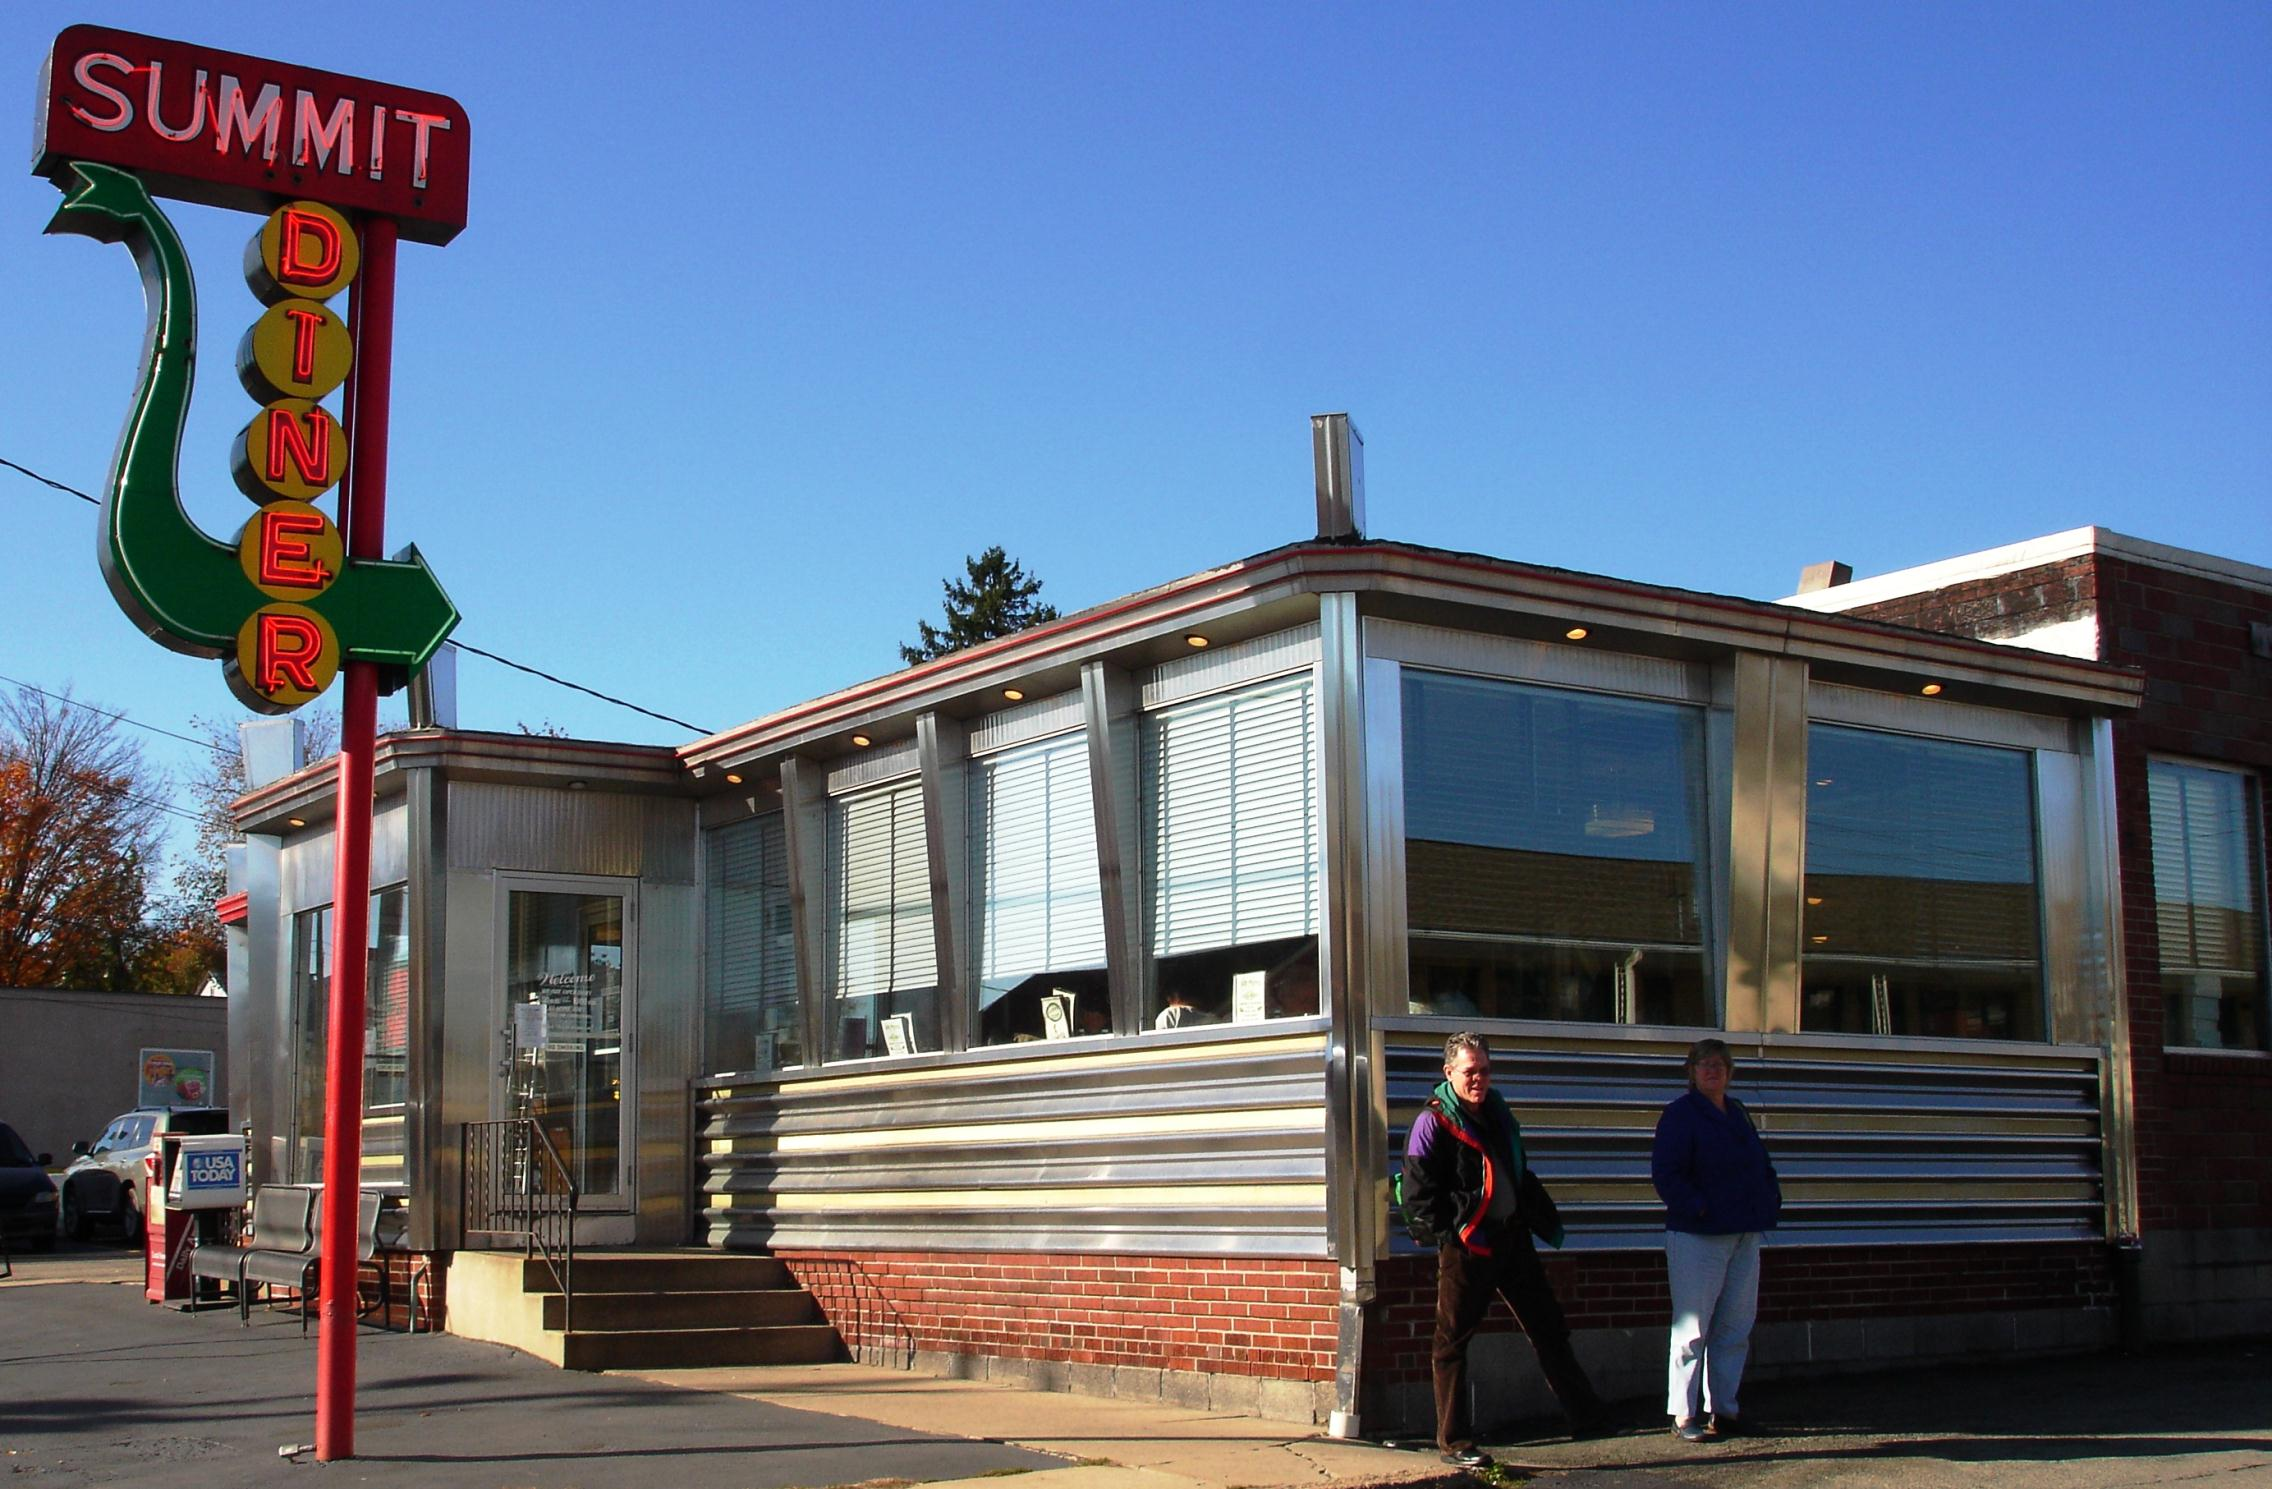 The Summit Diner is a welcome breakfast oasis along the notorious dining desert known as the Pennsylvania Turnpike.